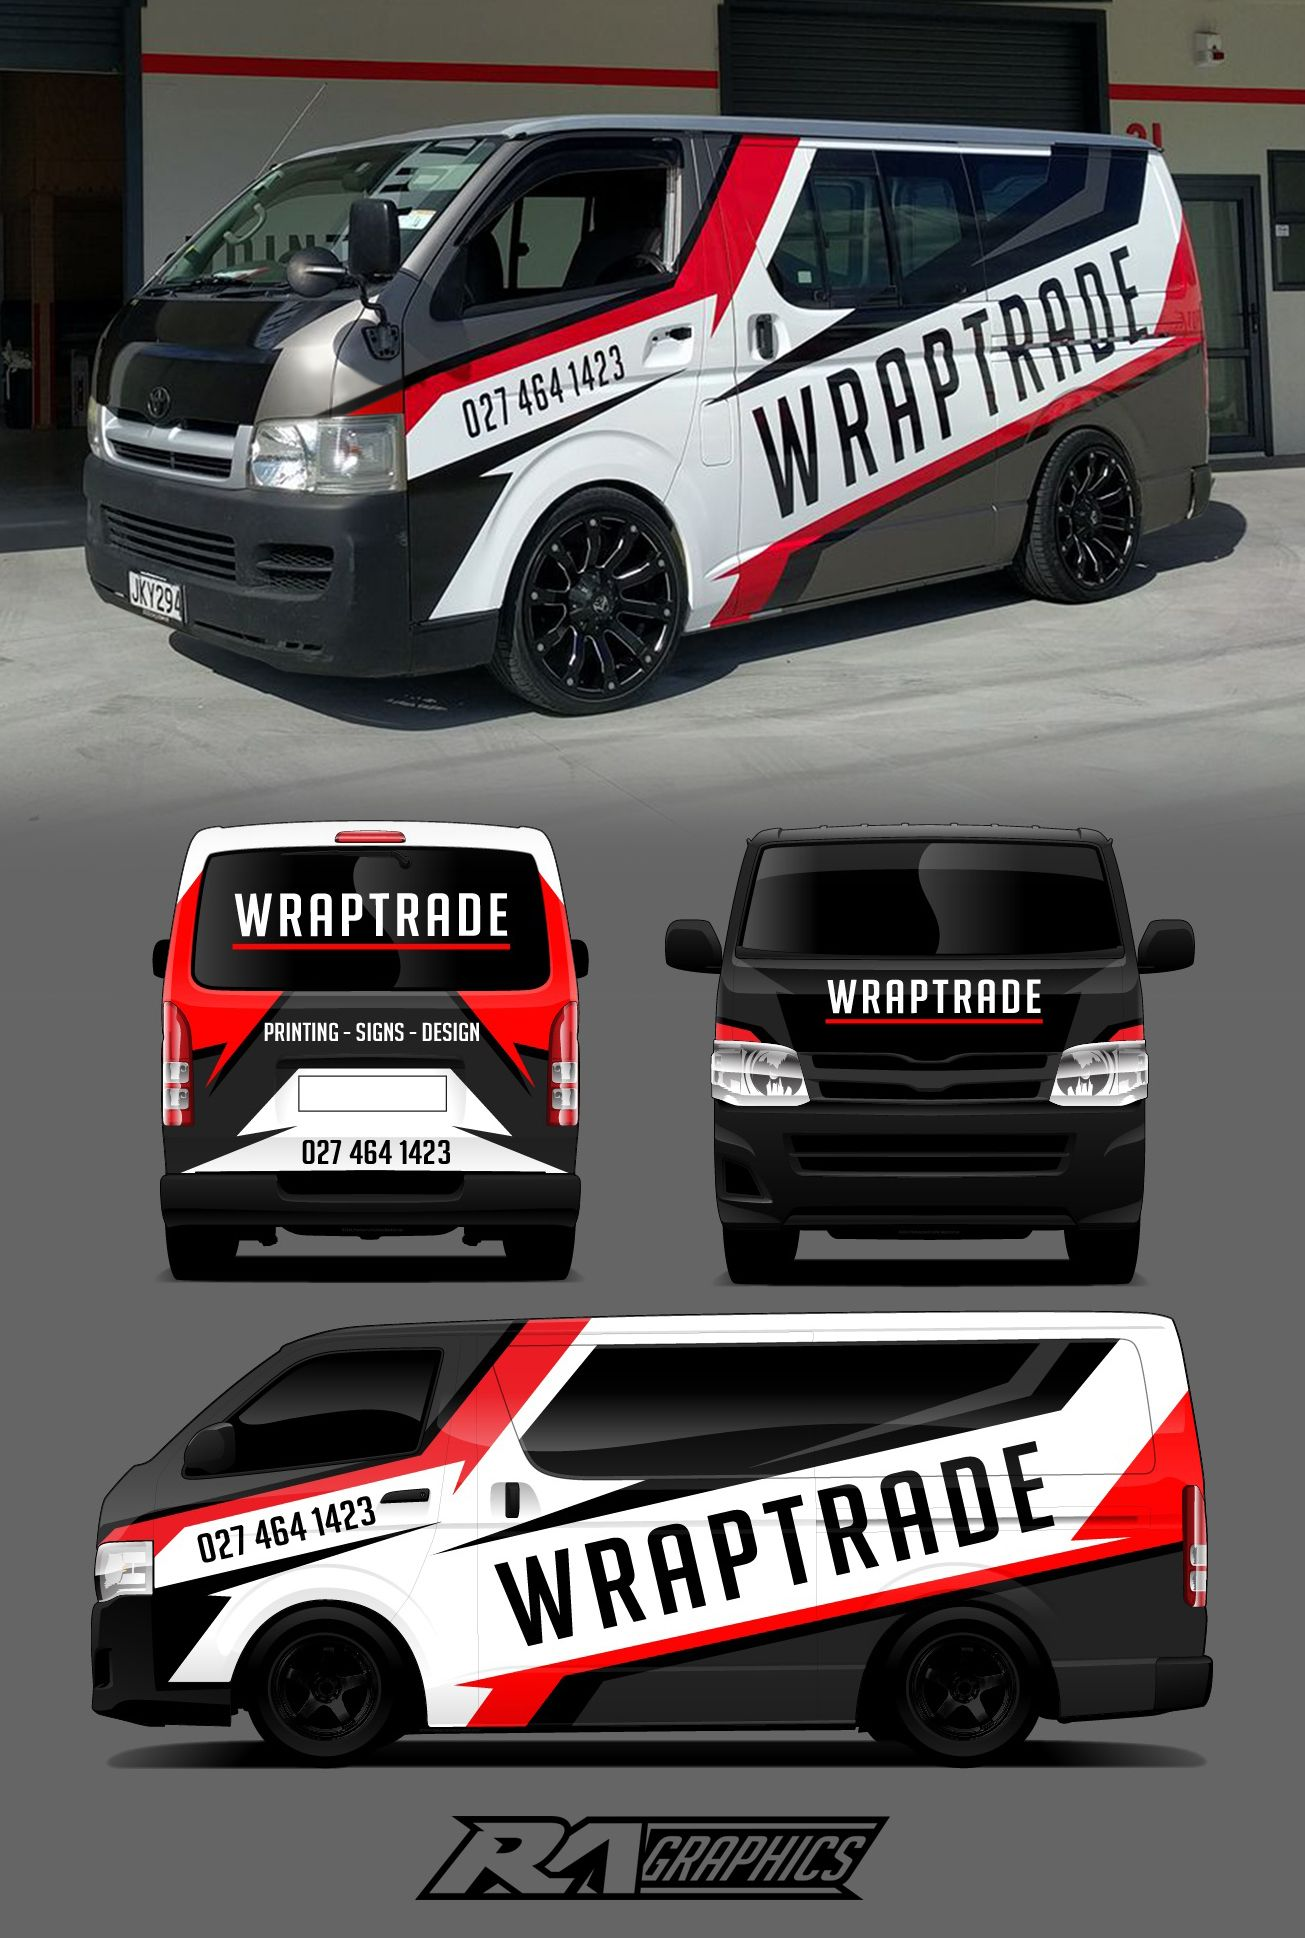 Pin By Gareth James On Wrapped Van Signage Vehicle